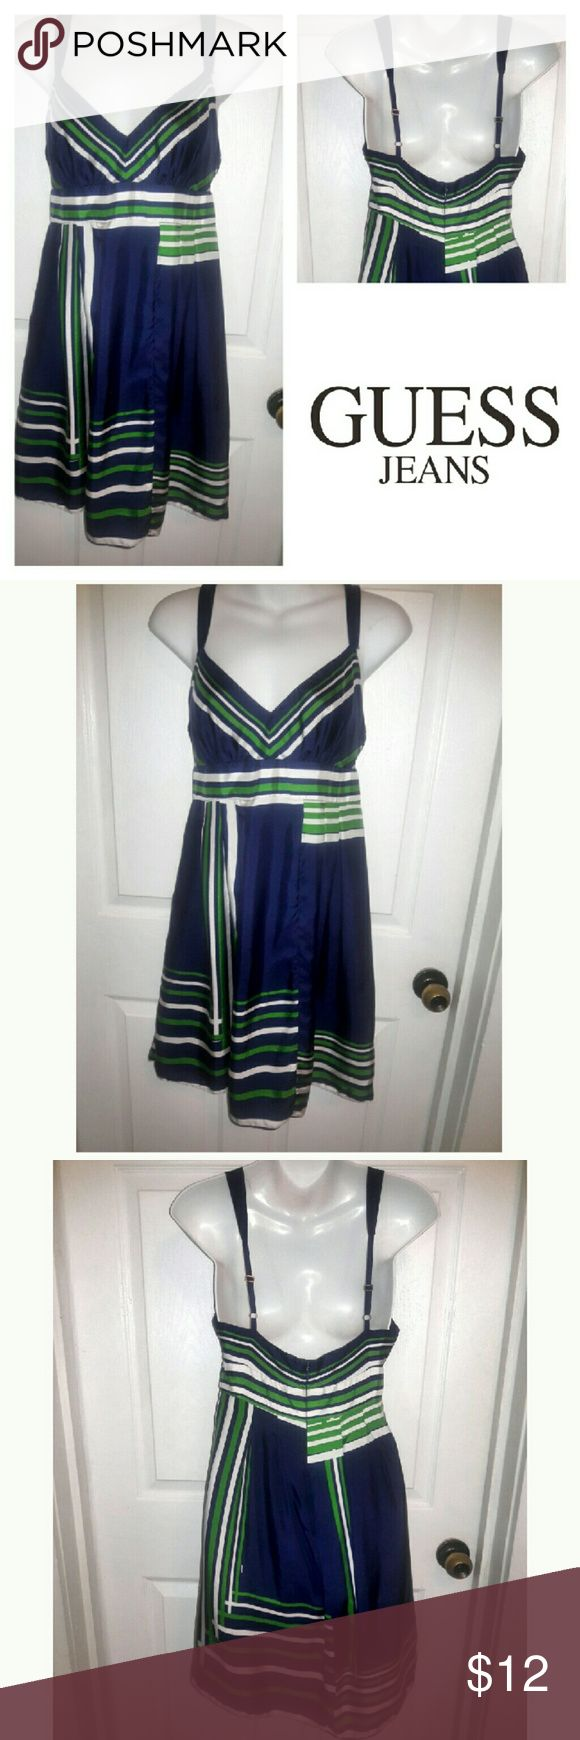 100% Silk Guess Jeans blue and green dress 100% silk, Guess Jeans blue and green dress. Good condition. Two flaws pictured. One thread popped from right strap and two tiny pulls you don't notice. Adjustable straps with gold hardware. Very cute dress. Fully lined with chiffon style fabric. Size 7 Guess Dresses